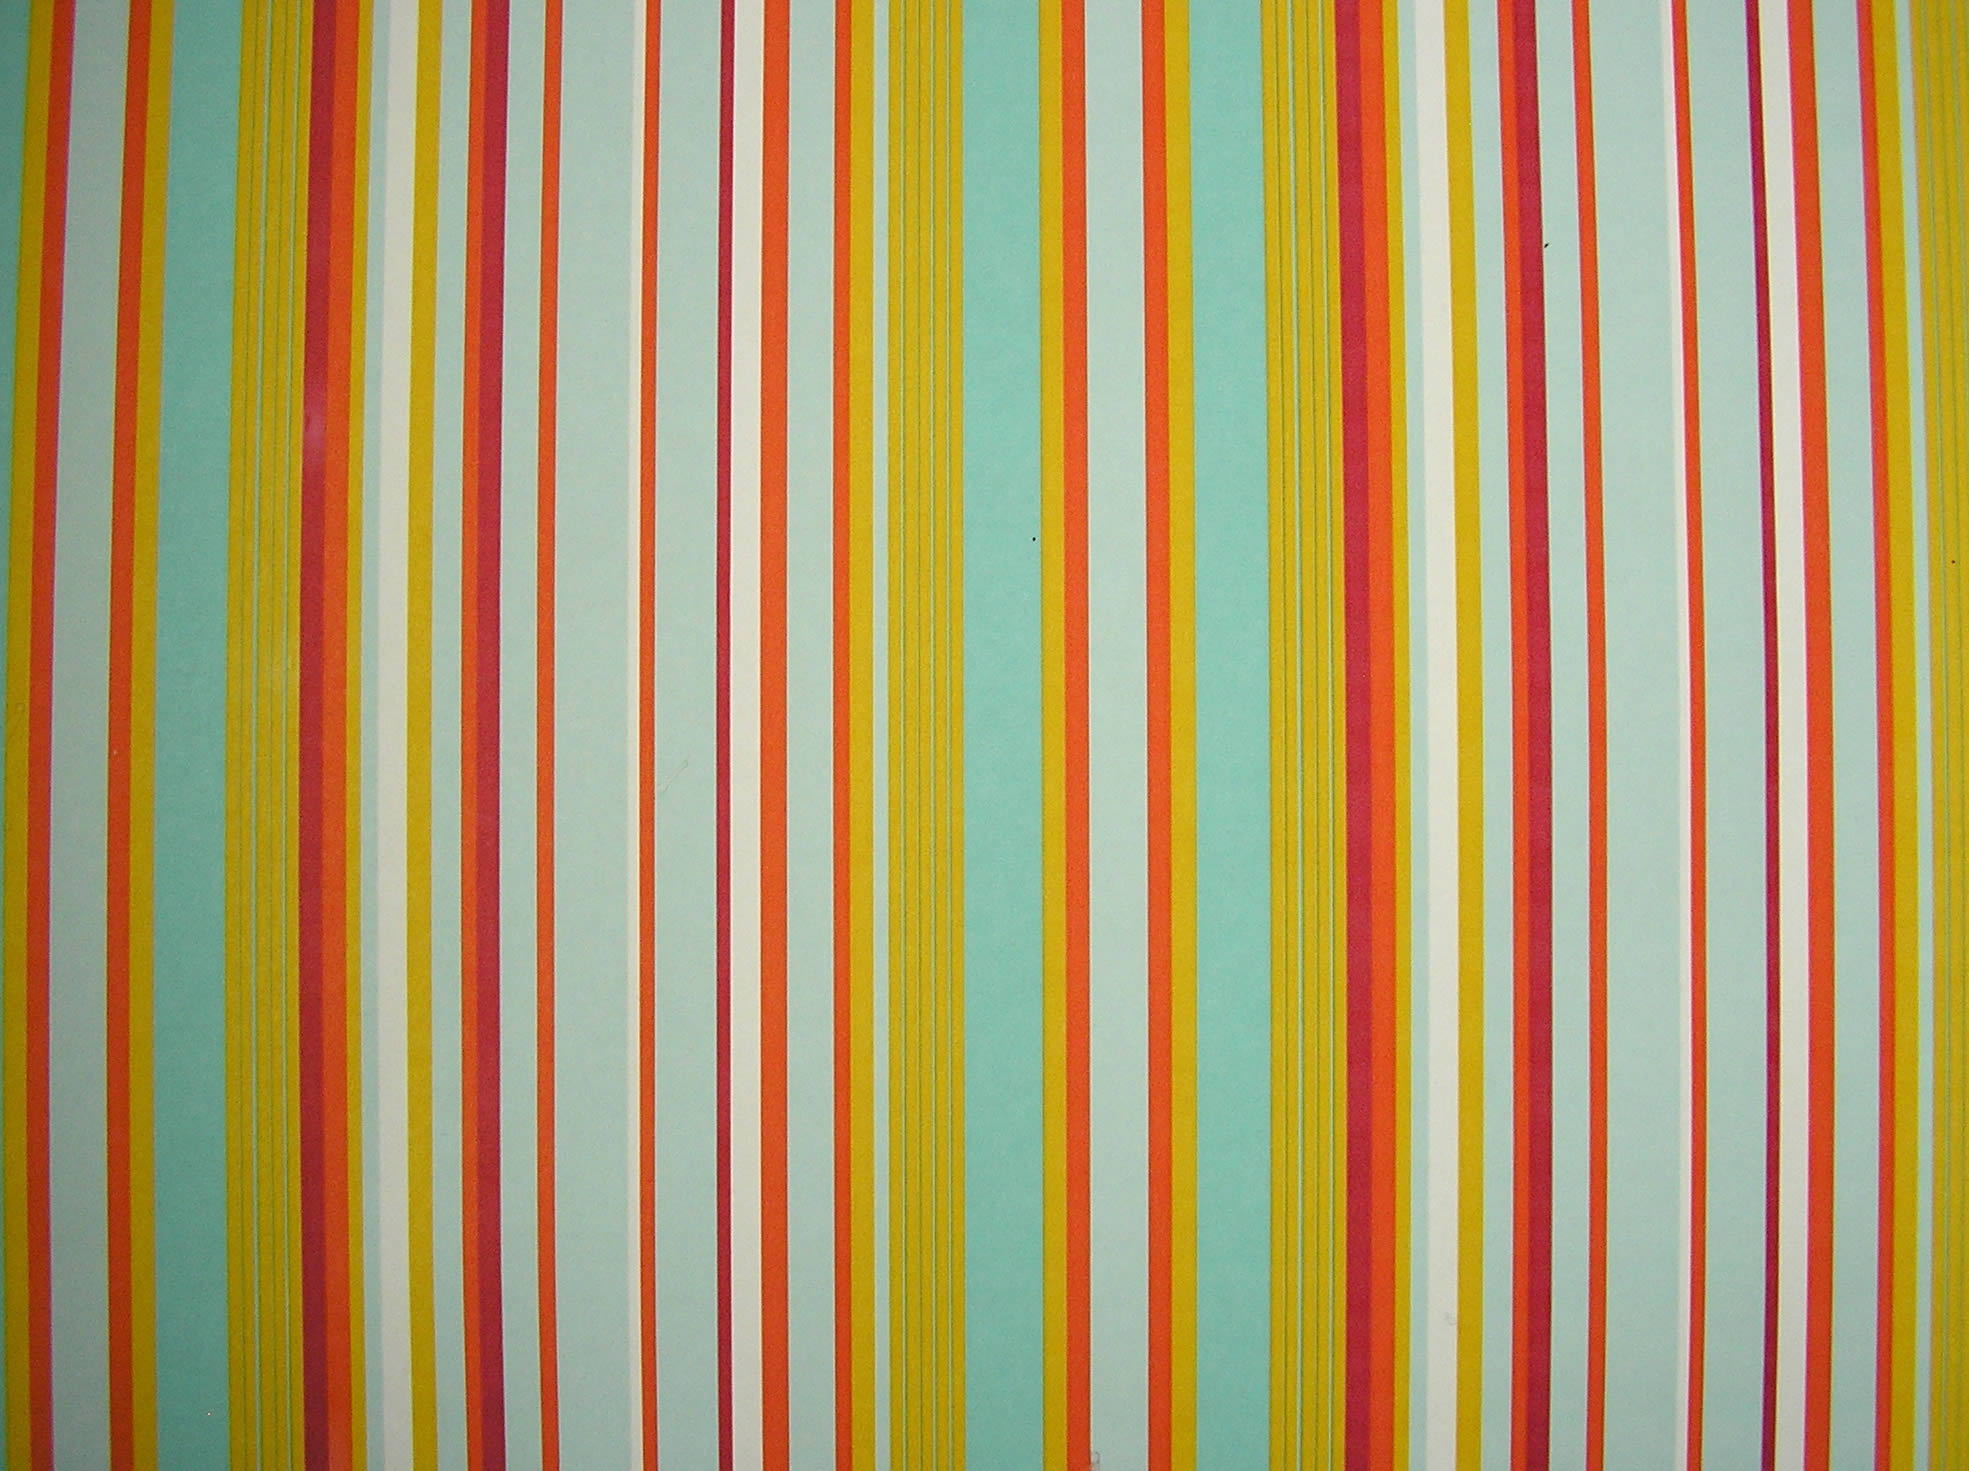 Multicolour Striped Wallpaper